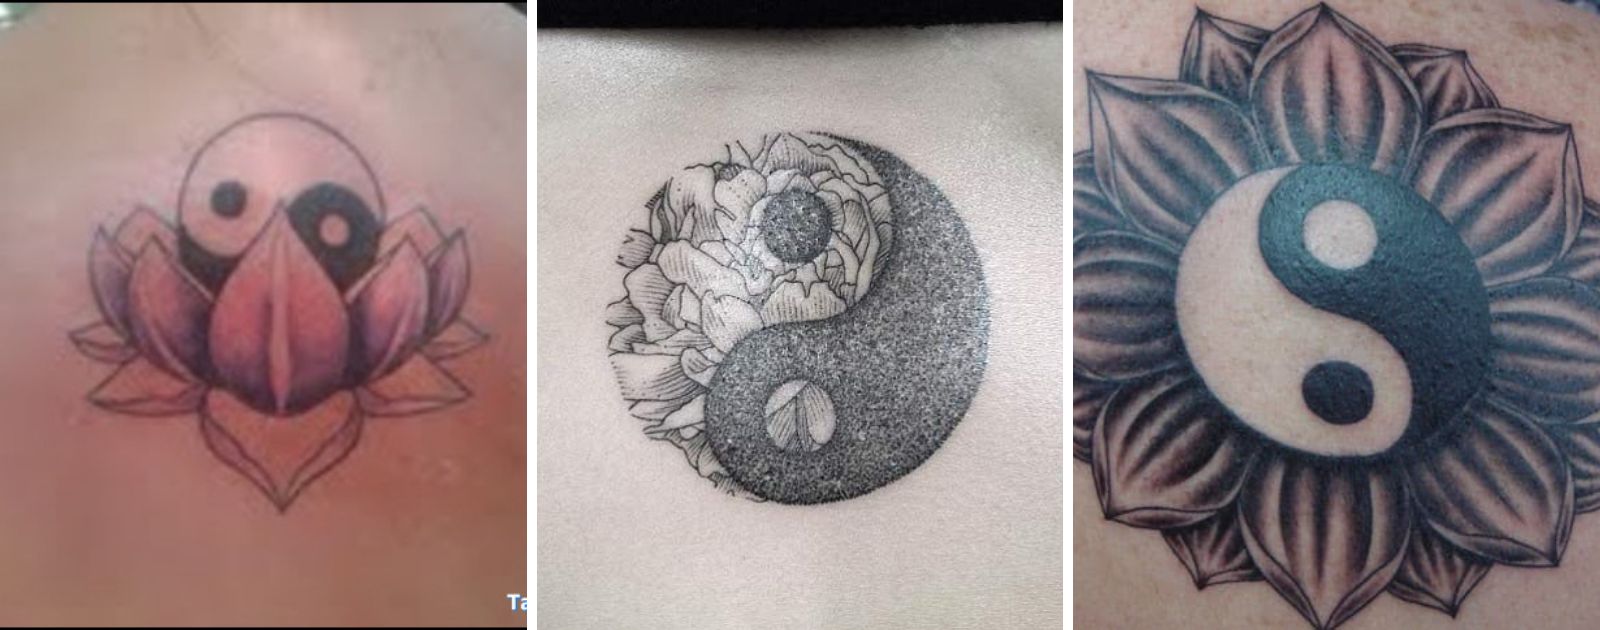 yin yang flower tattoo design